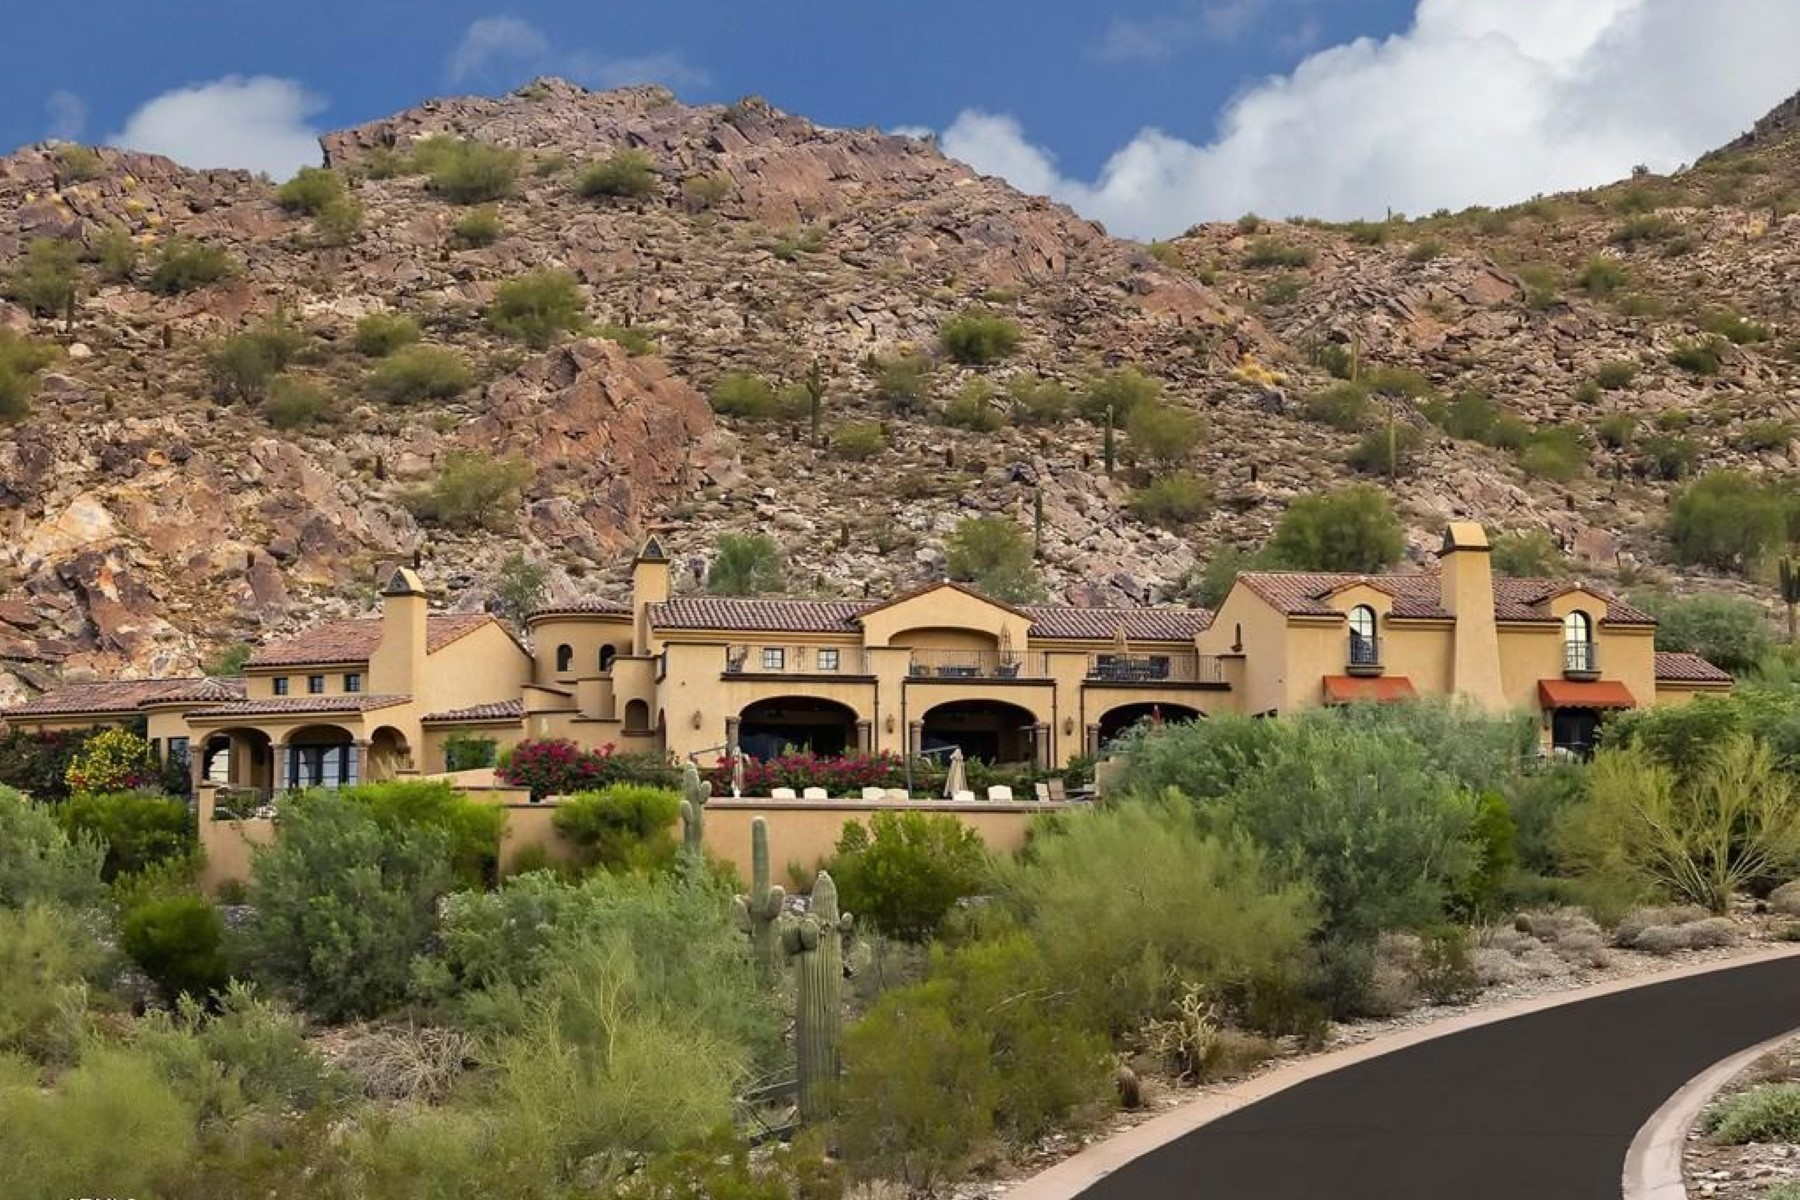 Частный односемейный дом для того Продажа на Exquisite masterpiece is consumed with elegance and is nestled on an 8 acre lot 20914 N 104th St Scottsdale, Аризона 85255 Соединенные Штаты